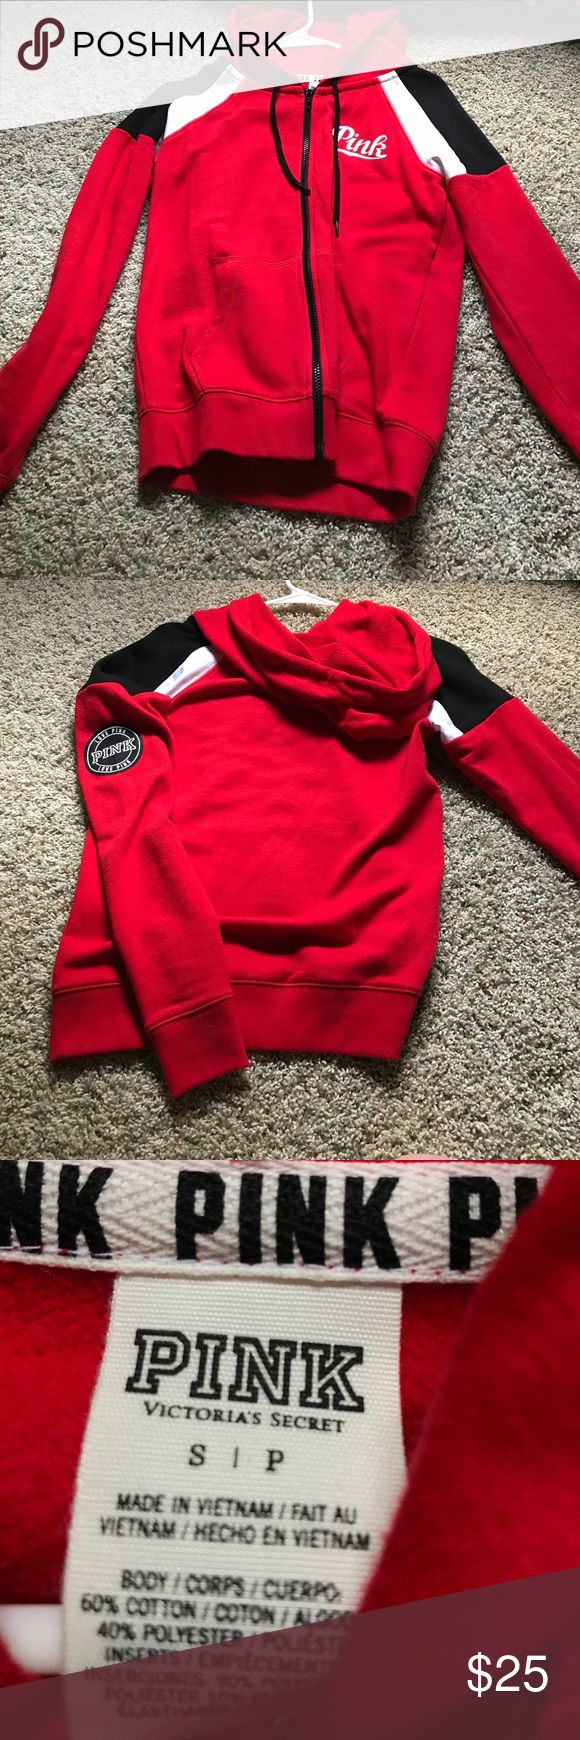 VICTORIA'S SECRET PINK Red zip-up hoodie Super soft, super comfy, and only worn twice! In amazing condition. PINK Victoria's Secret Tops Sweatshirts & Hoodies